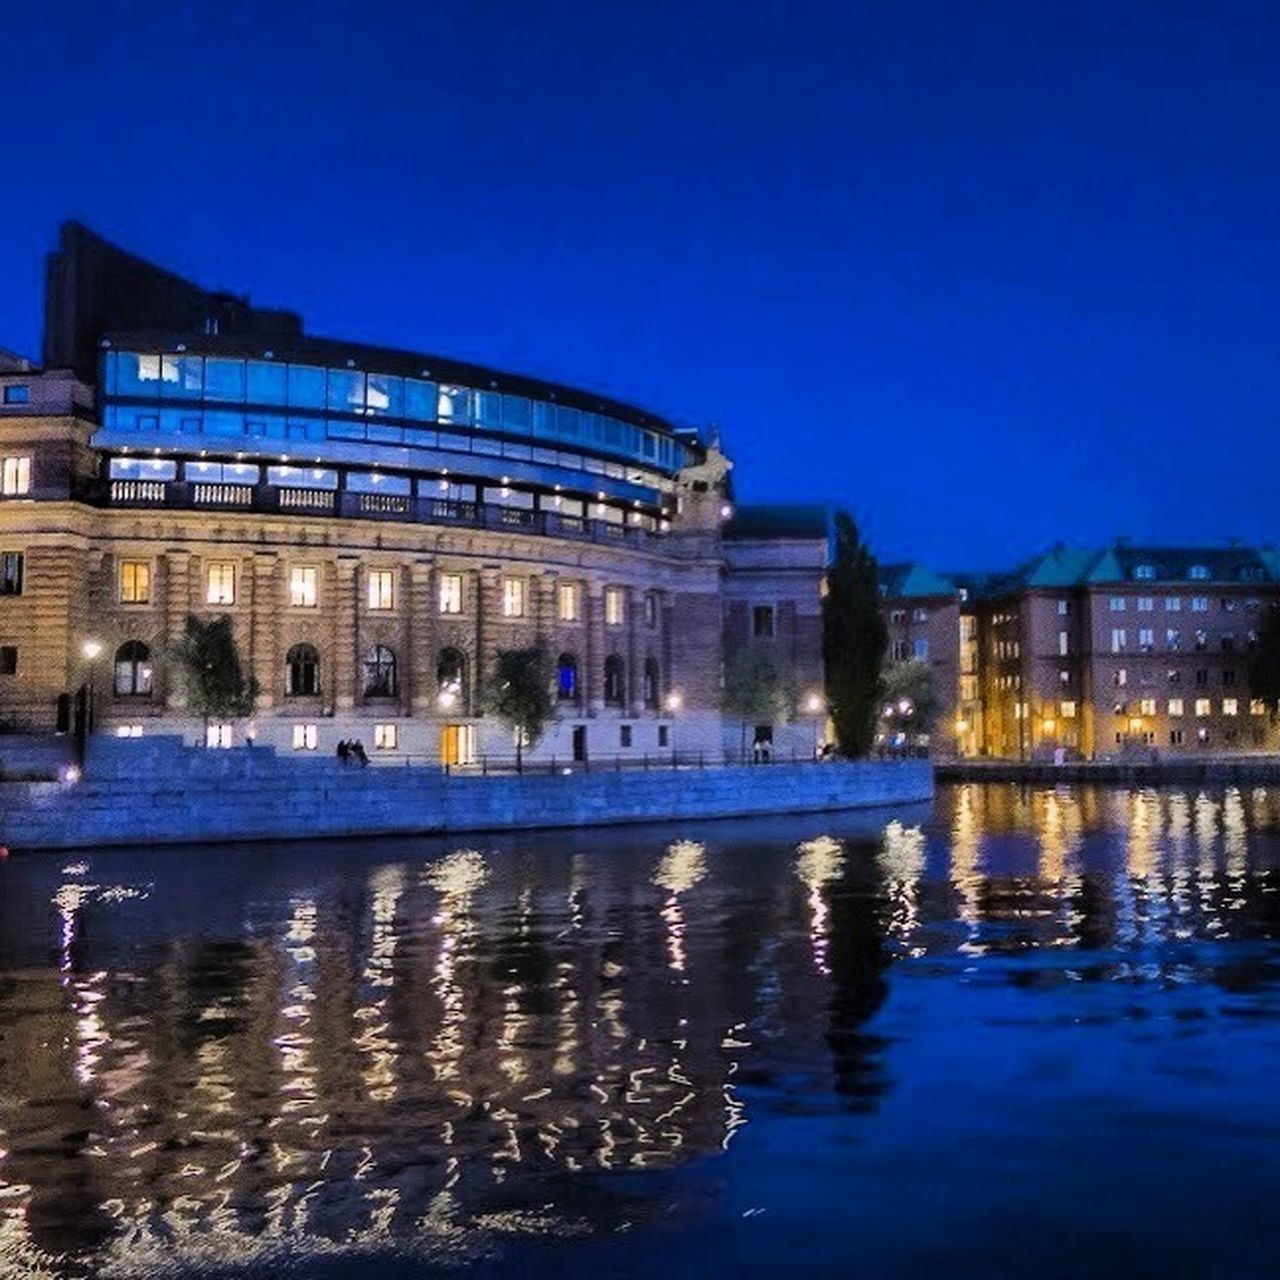 night, illuminated, architecture, reflection, building exterior, built structure, blue, travel destinations, arts culture and entertainment, dusk, history, travel, city, sky, outdoors, water, no people, cityscape, urban skyline